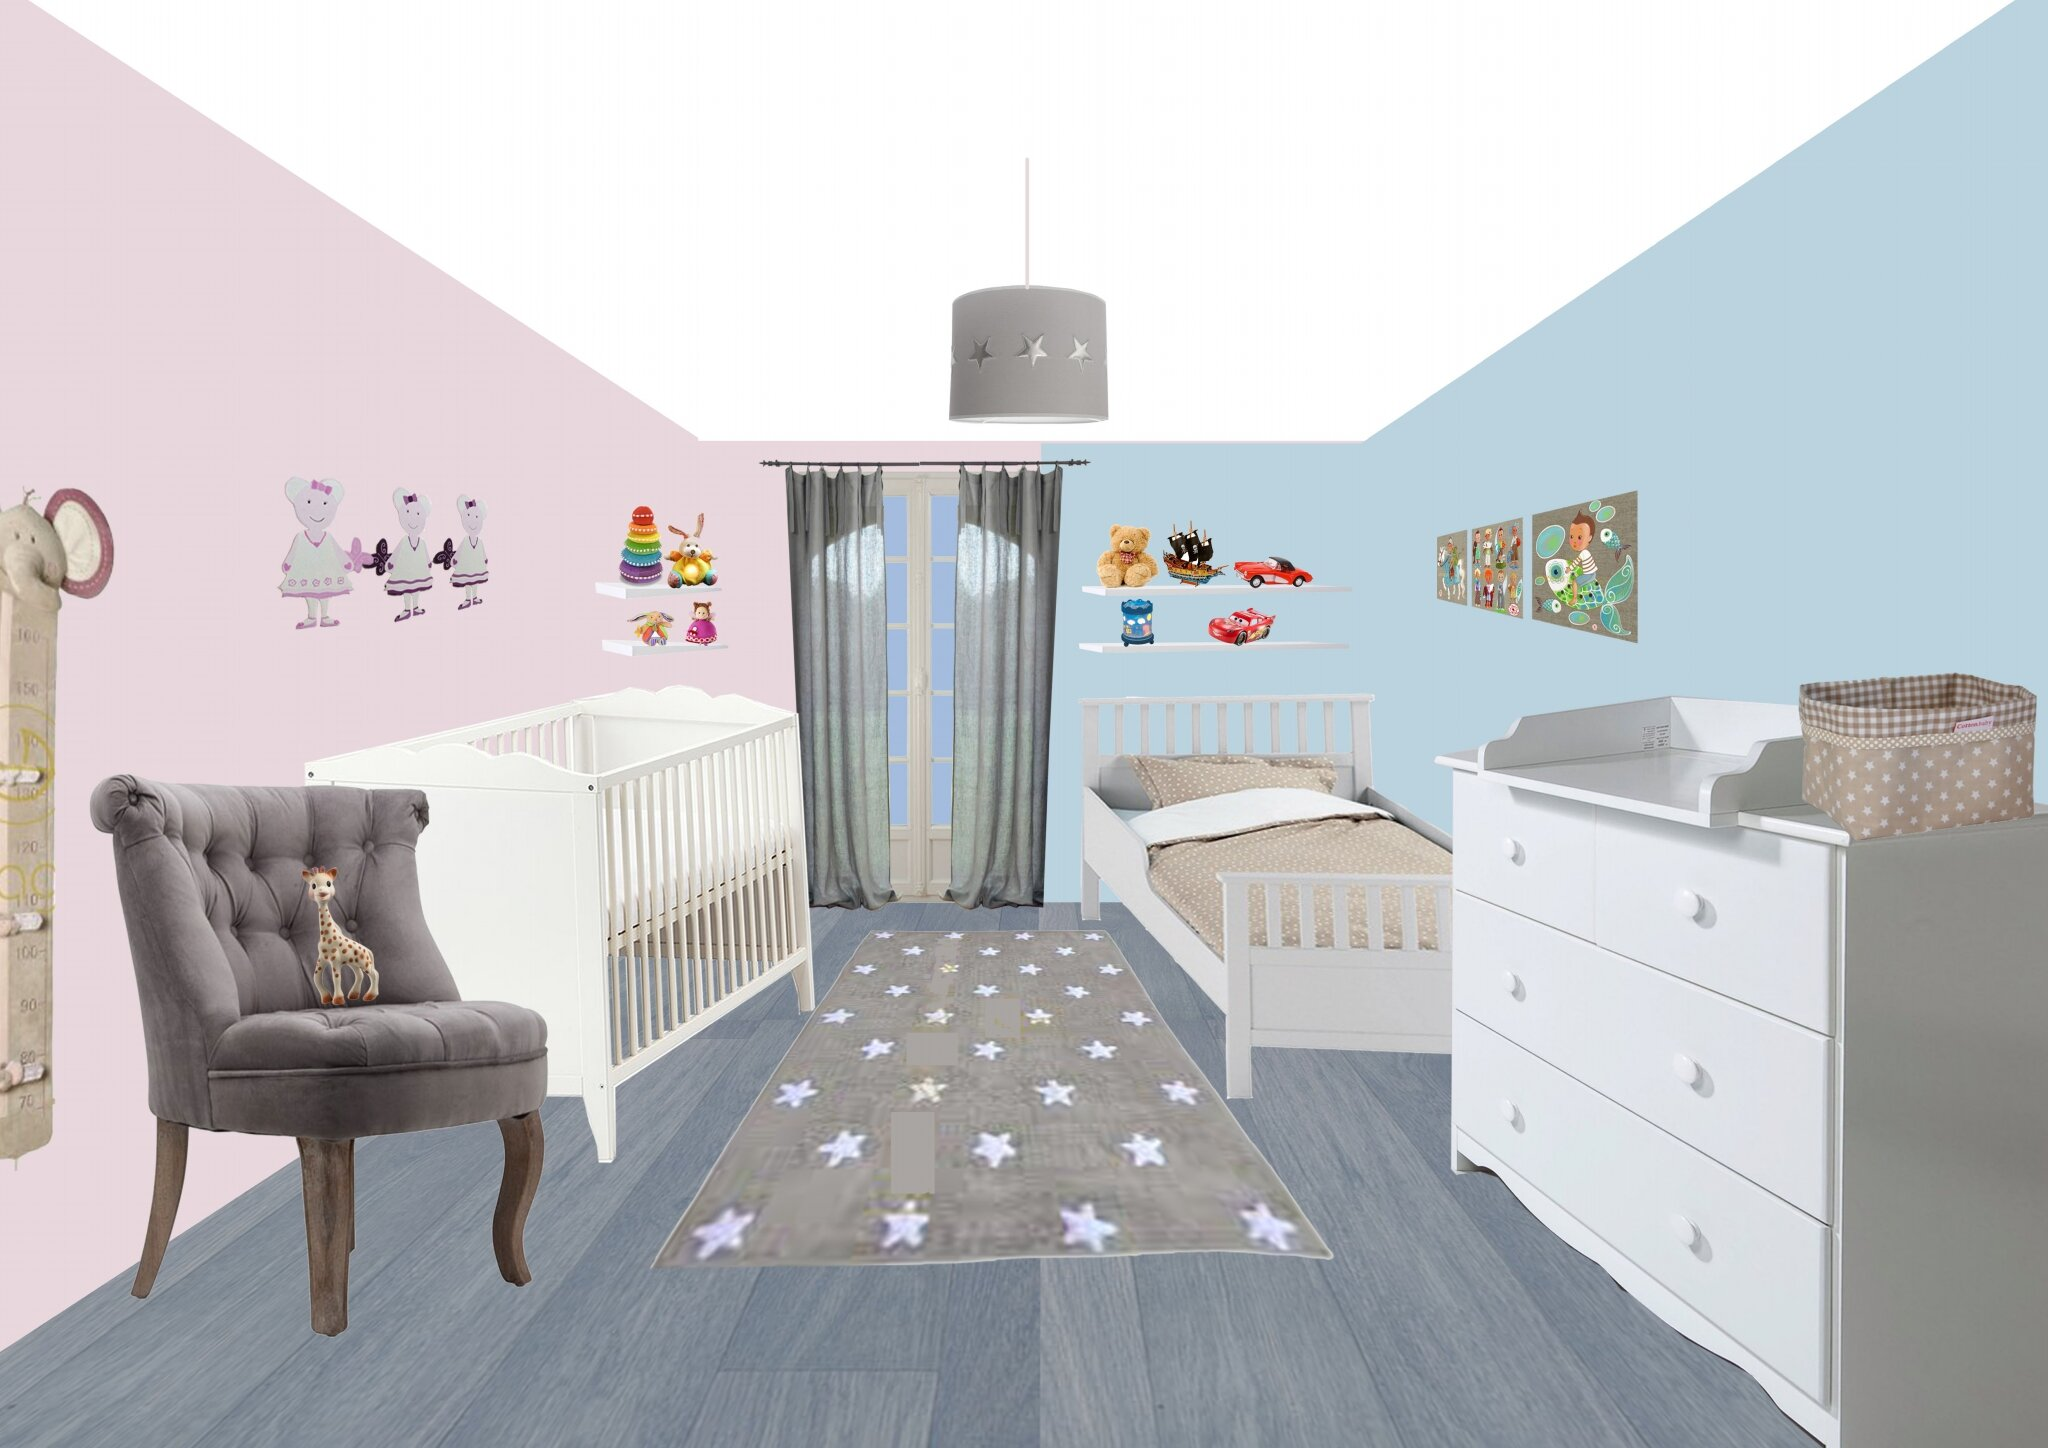 11 Chambre Enfants Photo De Perspectives Sous Photoshop So D Co